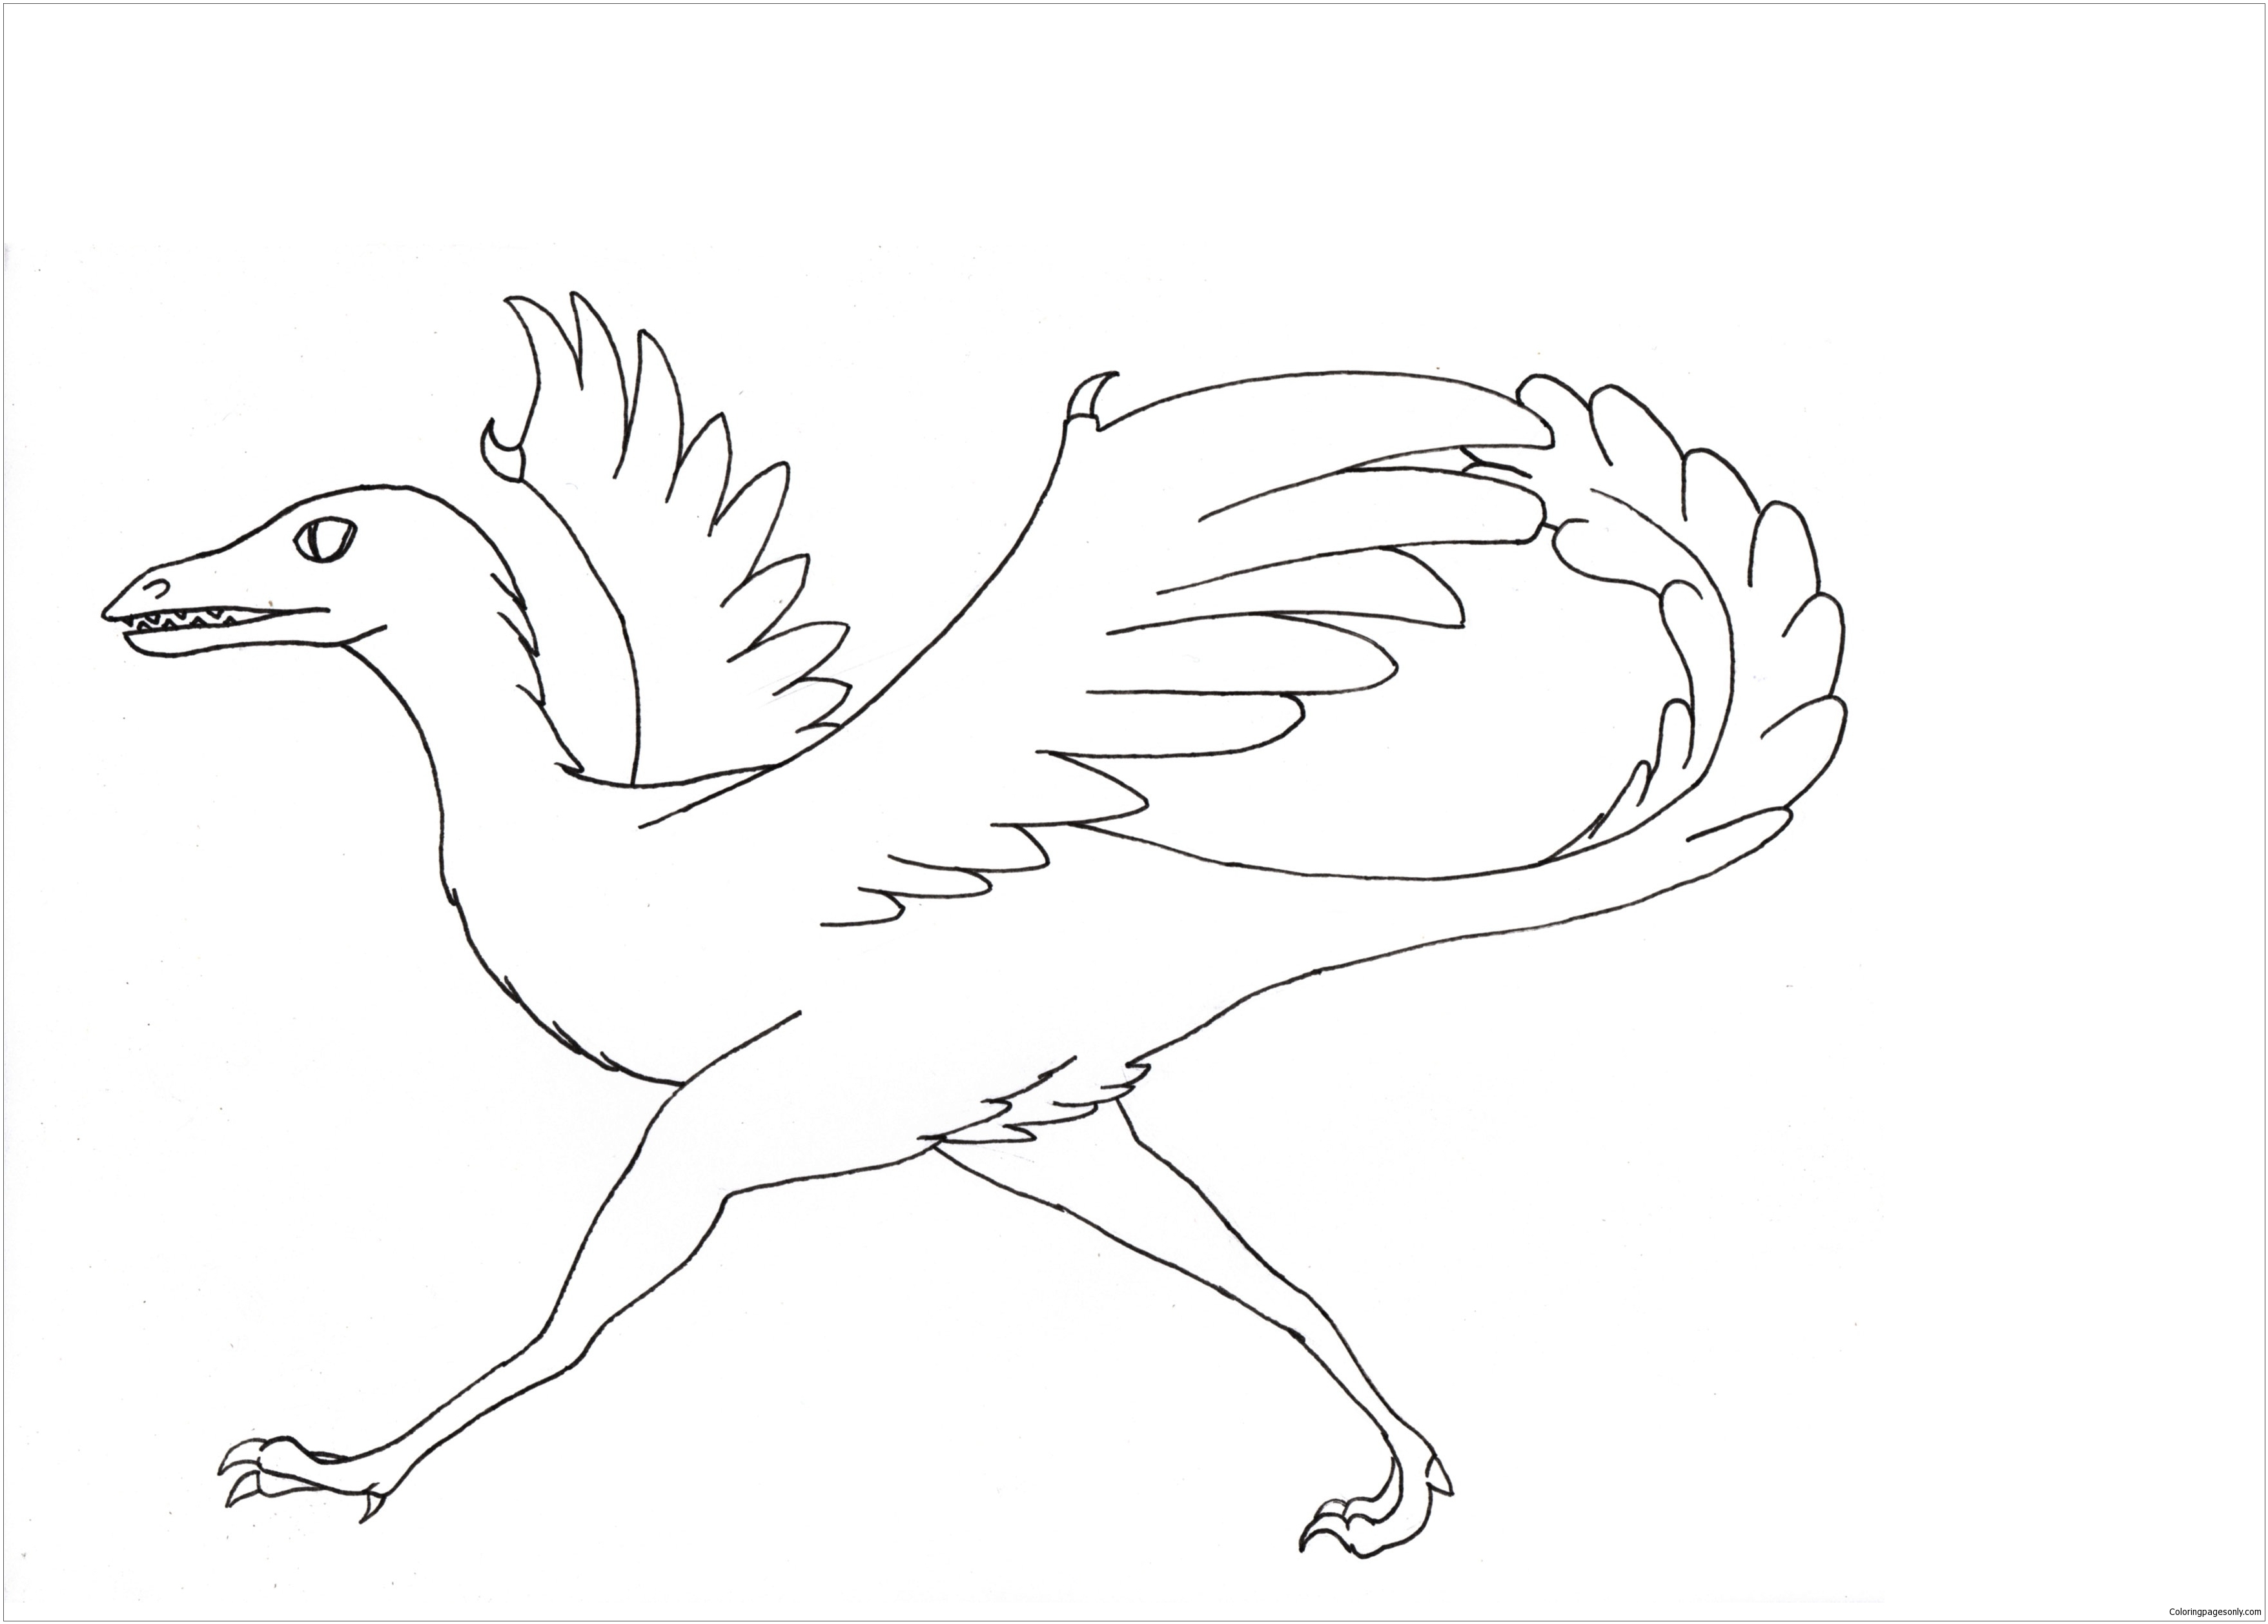 Archaeopteryx Dinosaur 1 Coloring Page